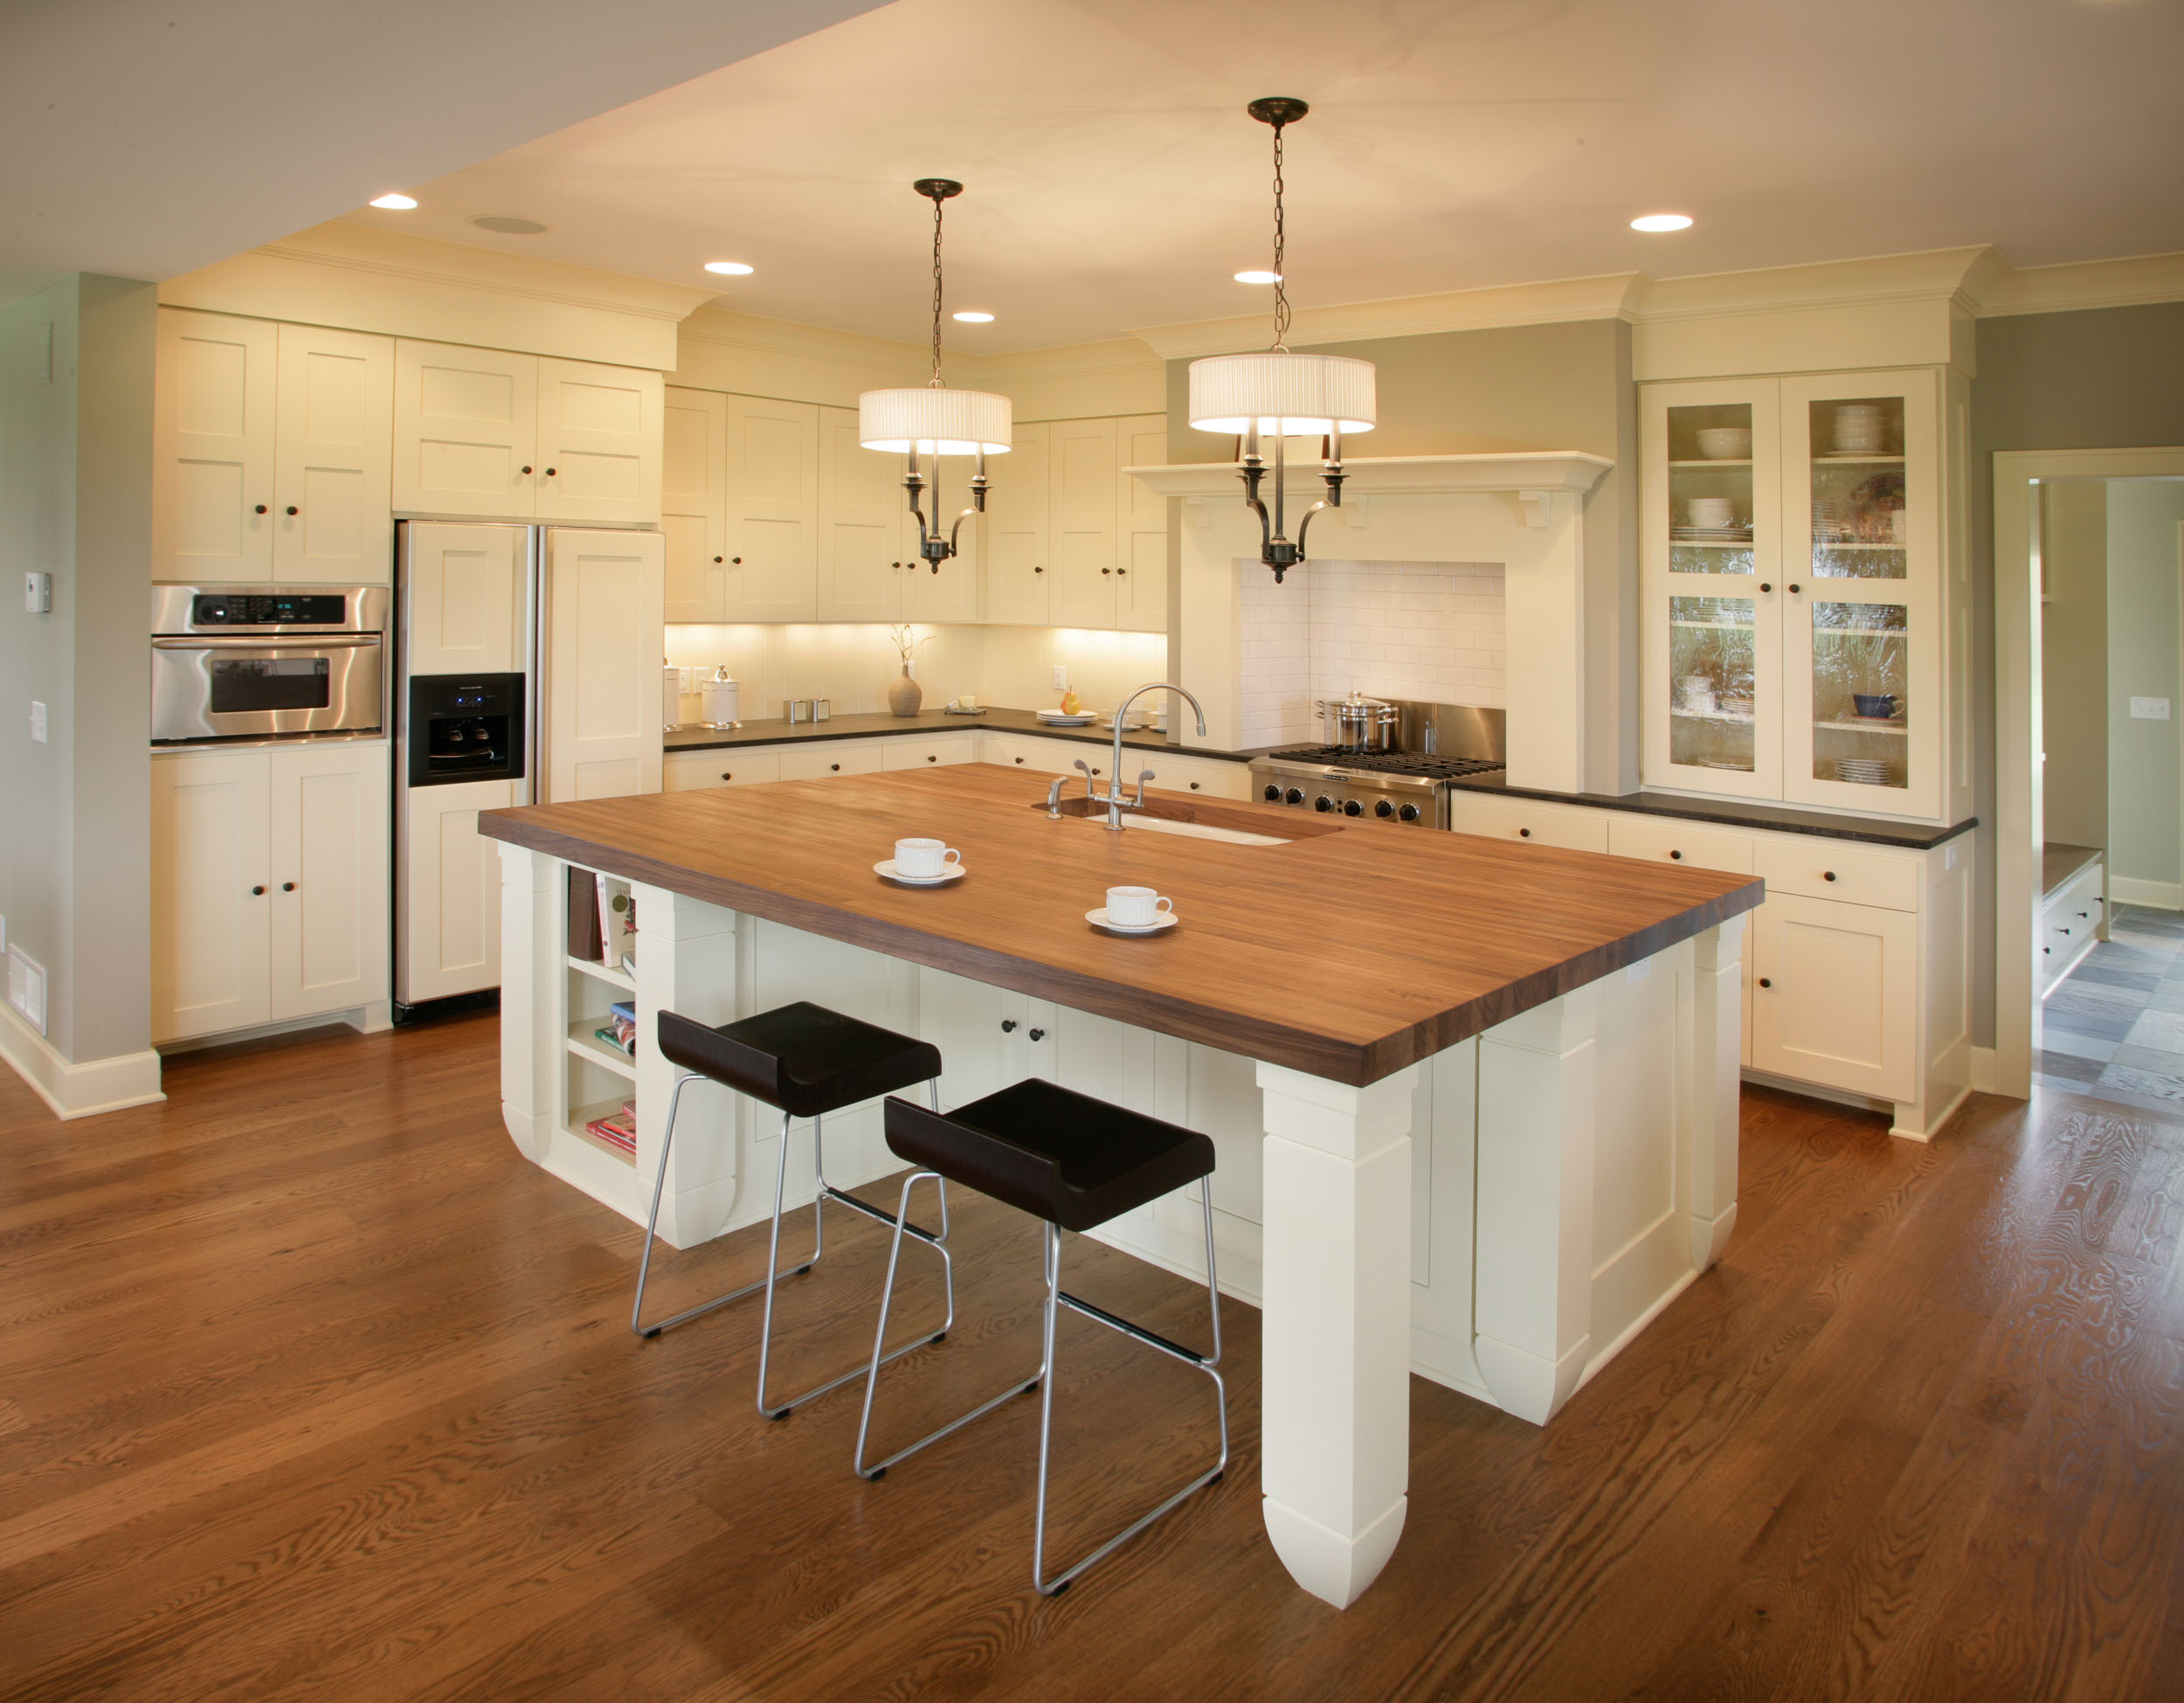 Cape Cod Kitchen Image